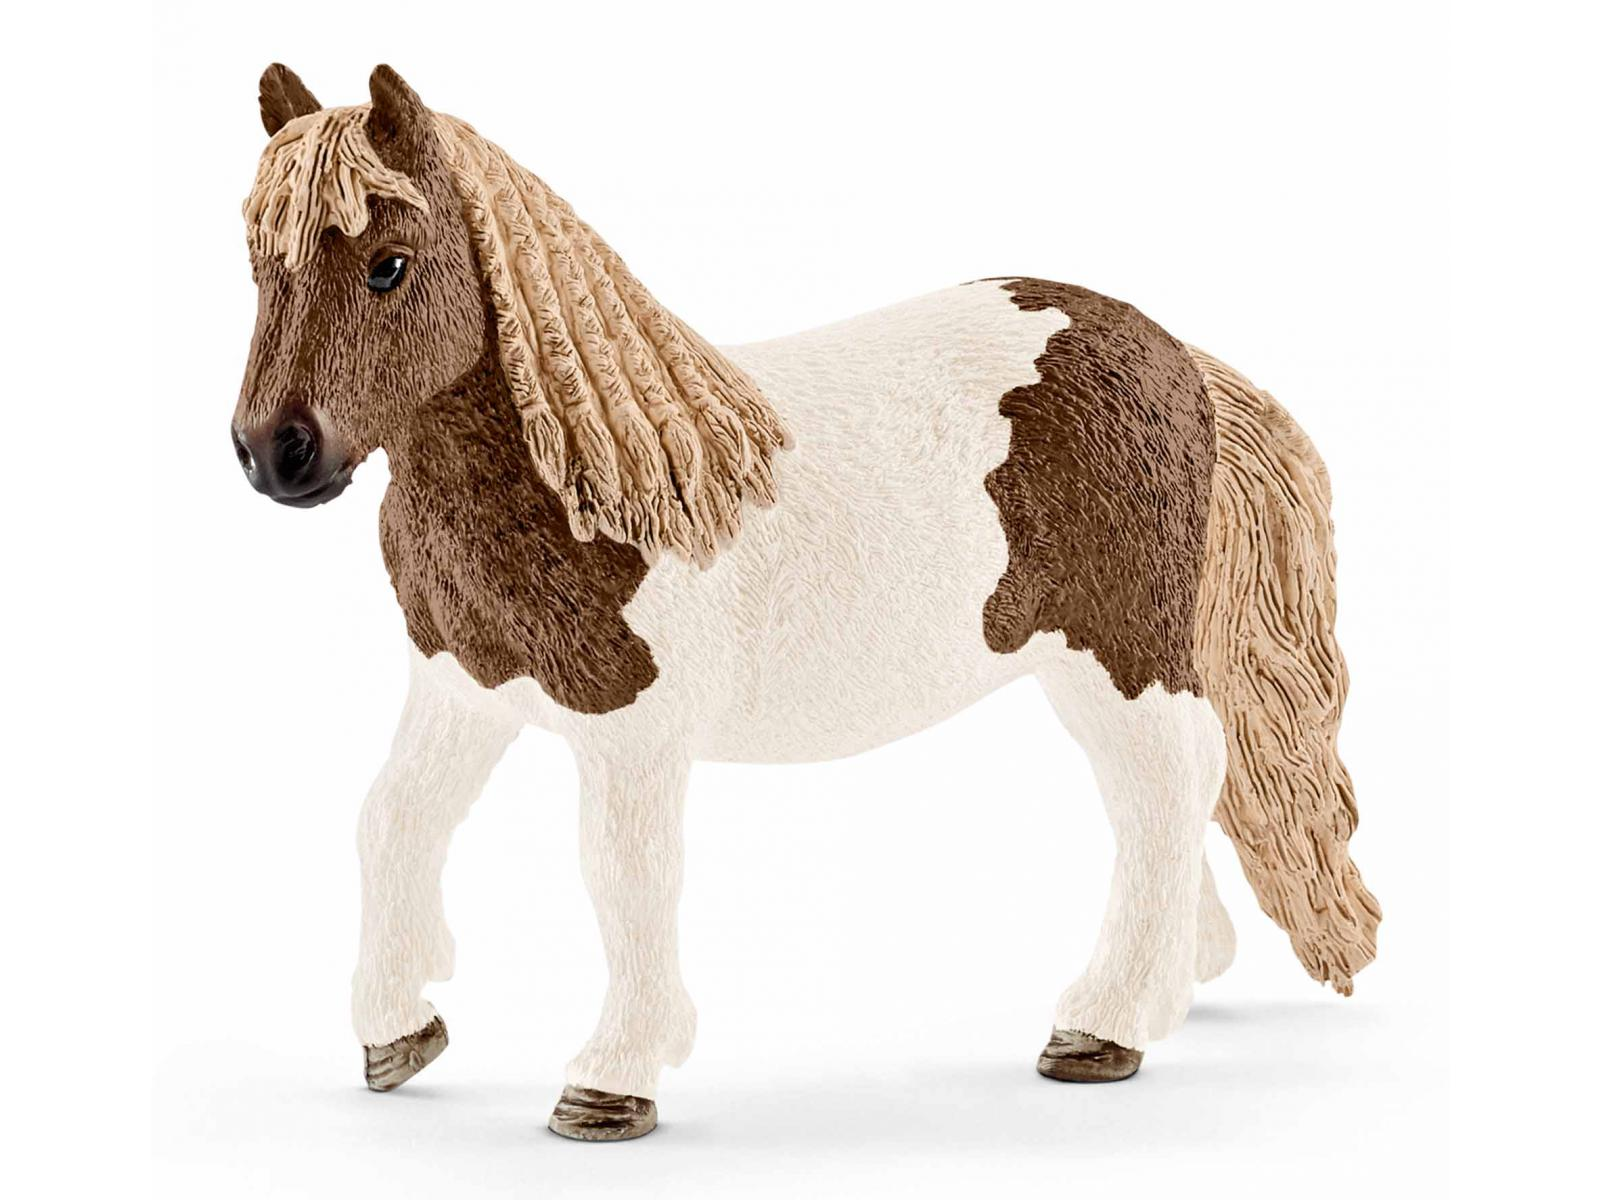 schleich figurine soigneuse poneys shetland 24 5 cm x 5 2 cm x 19 cm. Black Bedroom Furniture Sets. Home Design Ideas